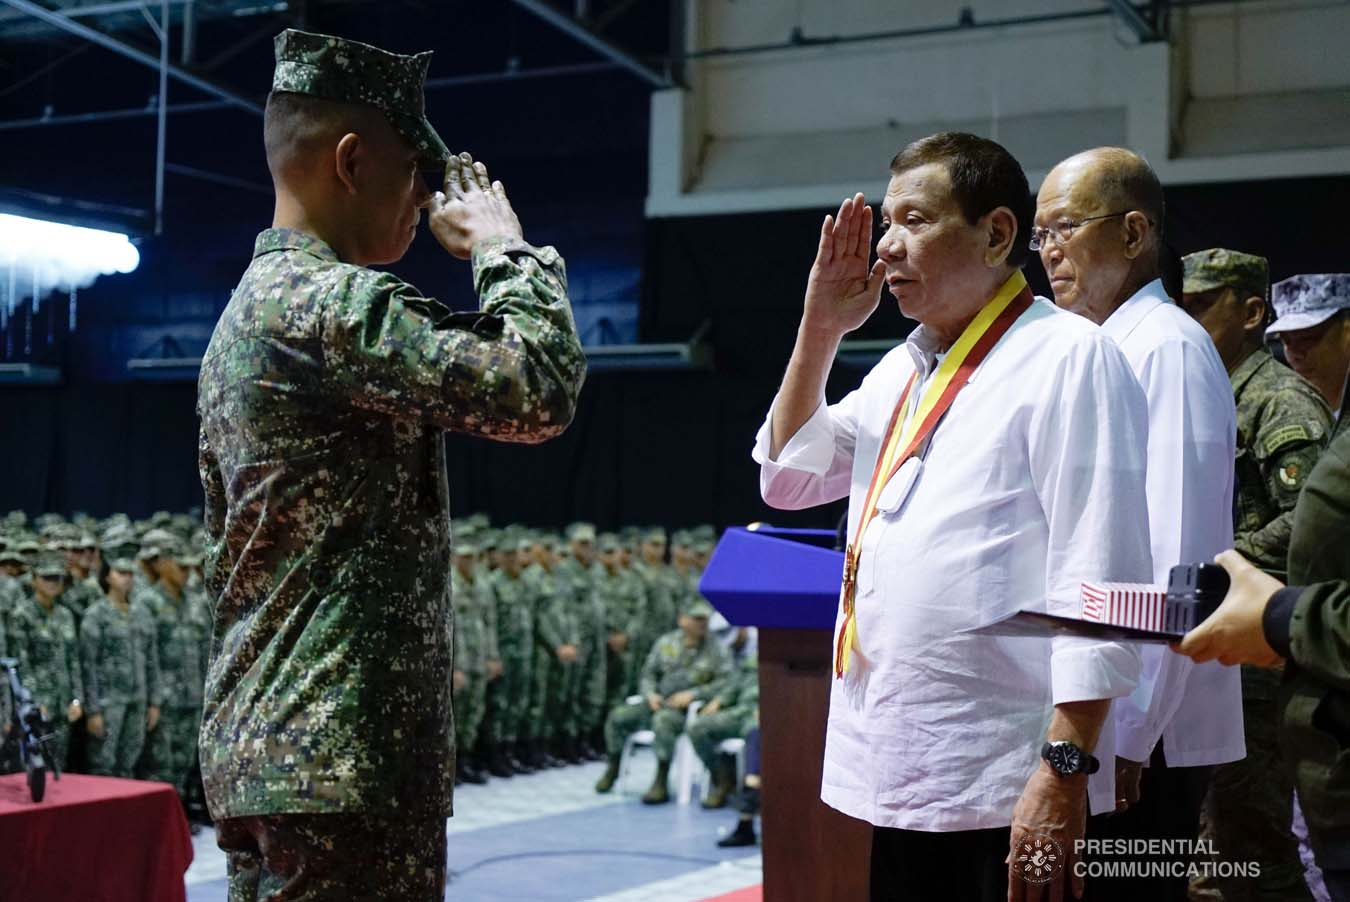 President Rodrigo Roa Duterte salutes one of the Philippine Marine Corps (PMC) personnel, who was conferred with the Order of Lapu-Lapu Rank of Kamagi, during his visit to the PMC headquarters at Fort Bonifacio in Taguig City on January 13, 2020. The President honored the PMC personnel who took part in the liberation of Marawi City from the terrorists. KING RODRIGUEZ/PRESIDENTIAL PHOTO